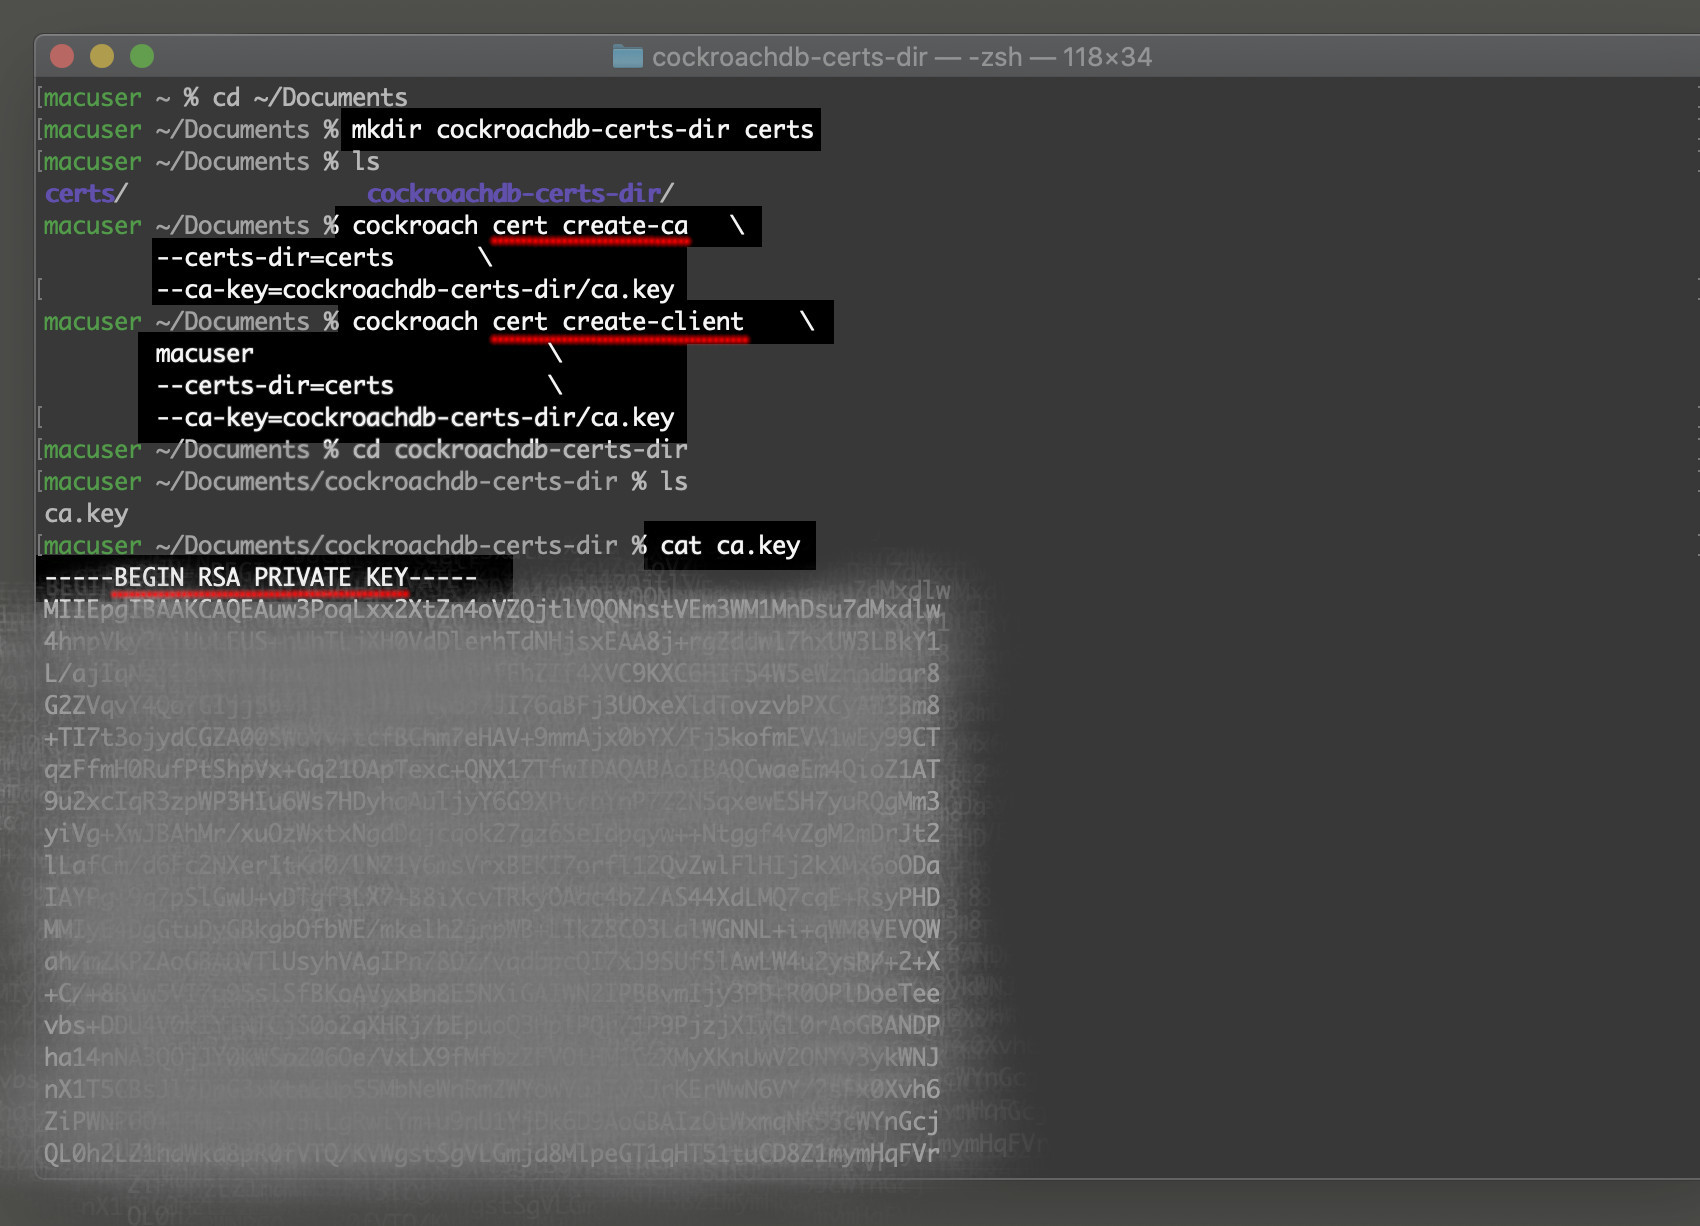 Screenshot of creating a certificate and key for a CockroachDB cluster with cockroach cert